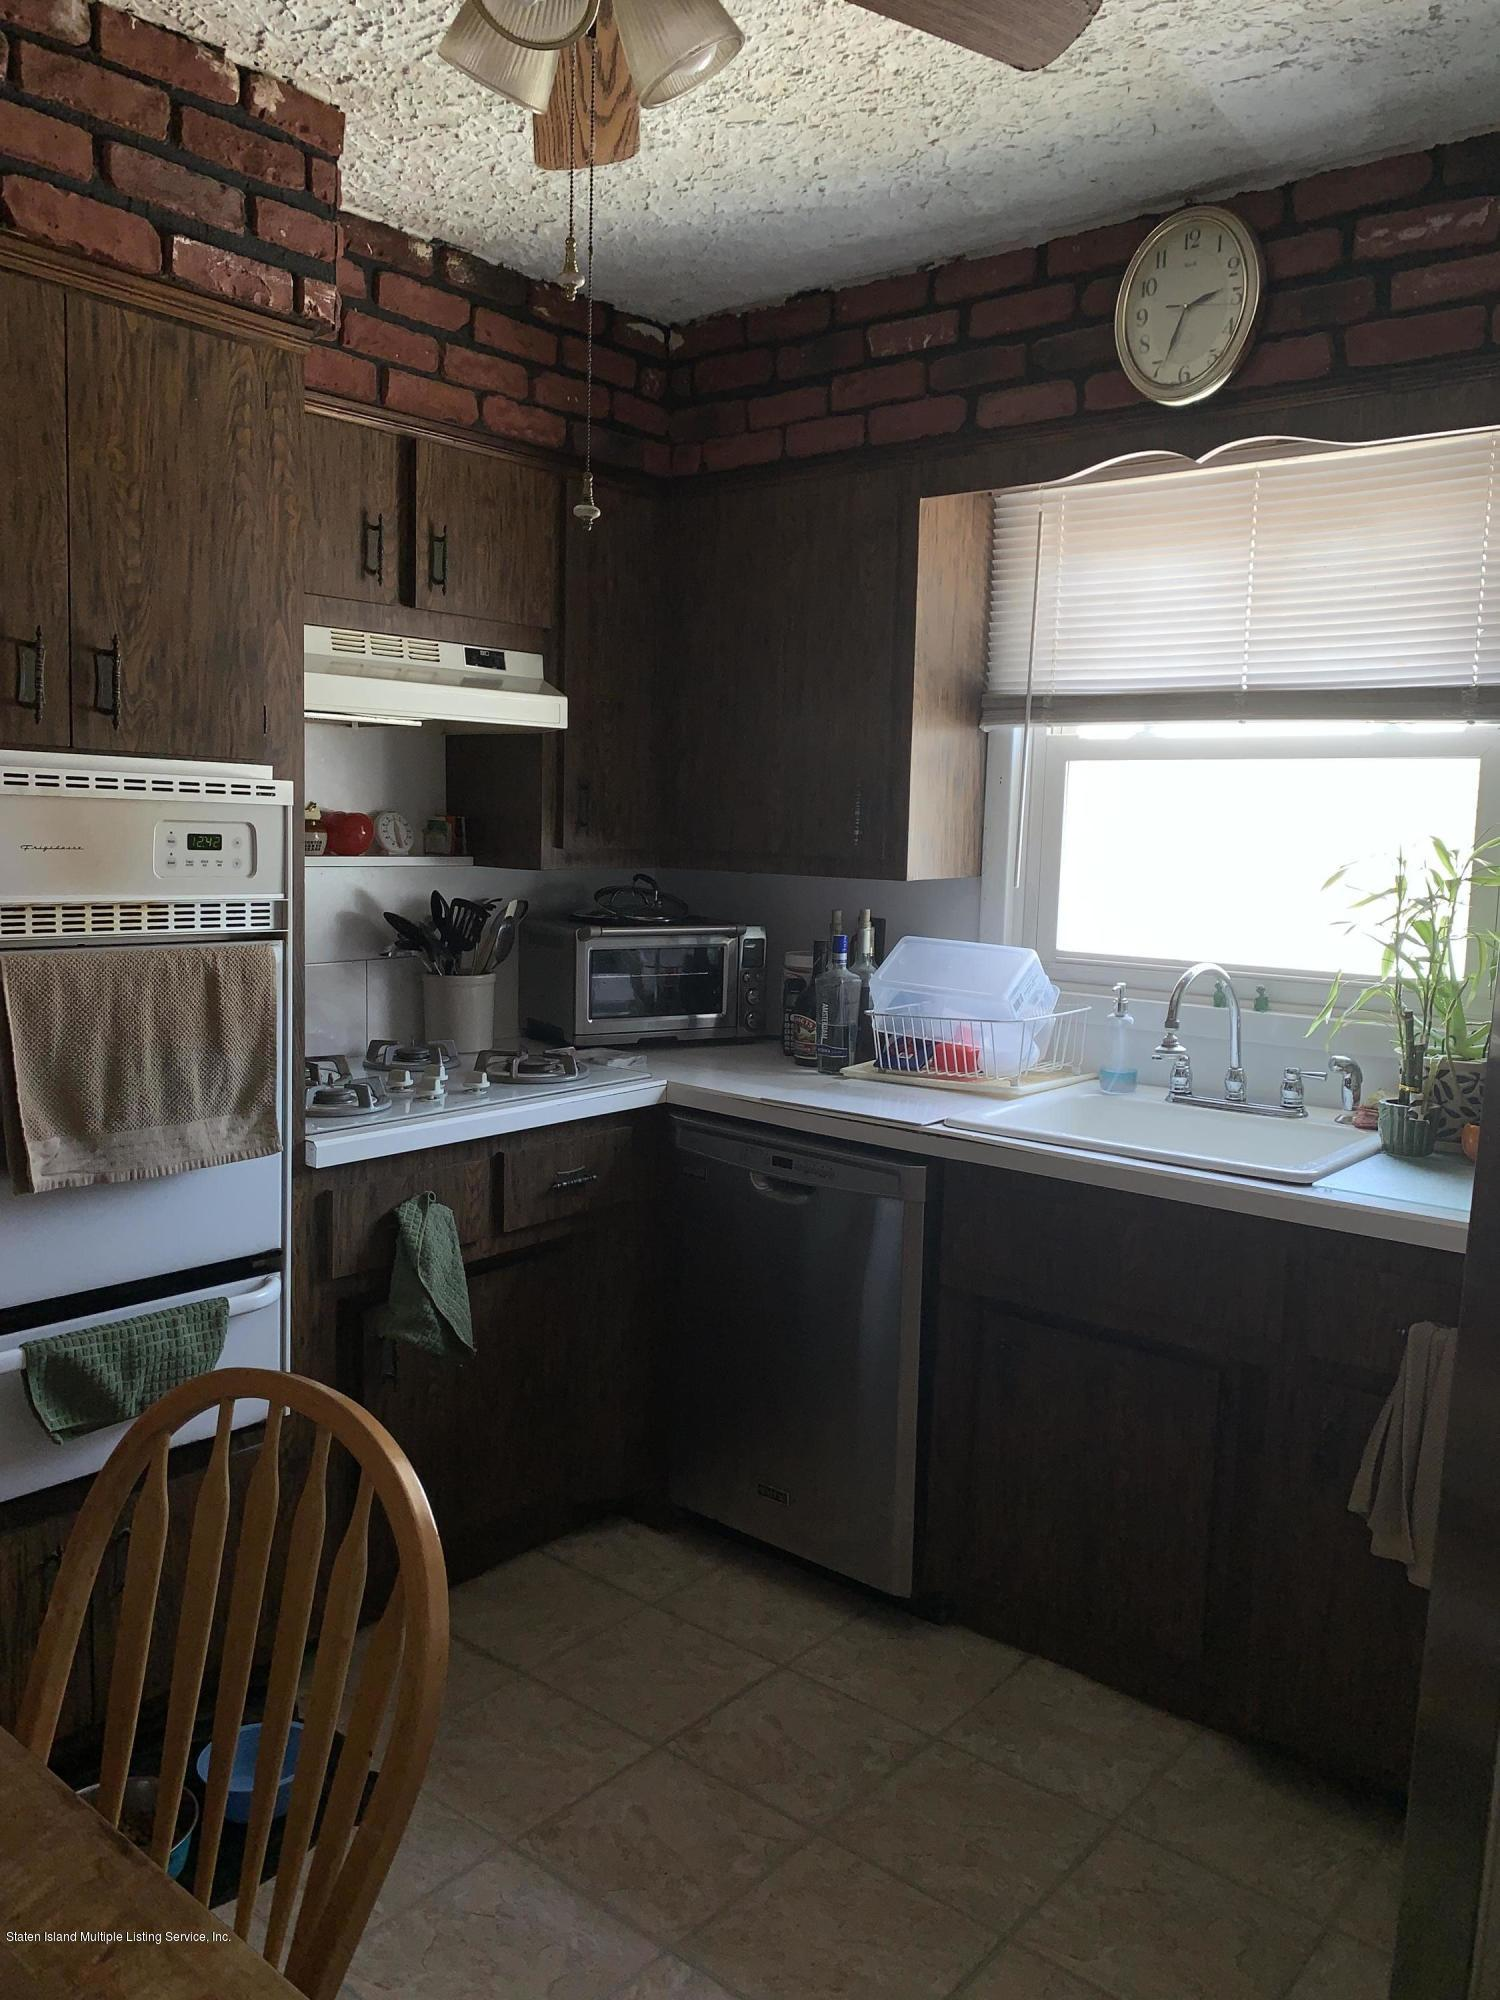 Single Family - Semi-Attached 45 Roma Avenue  Staten Island, NY 10306, MLS-1138173-8